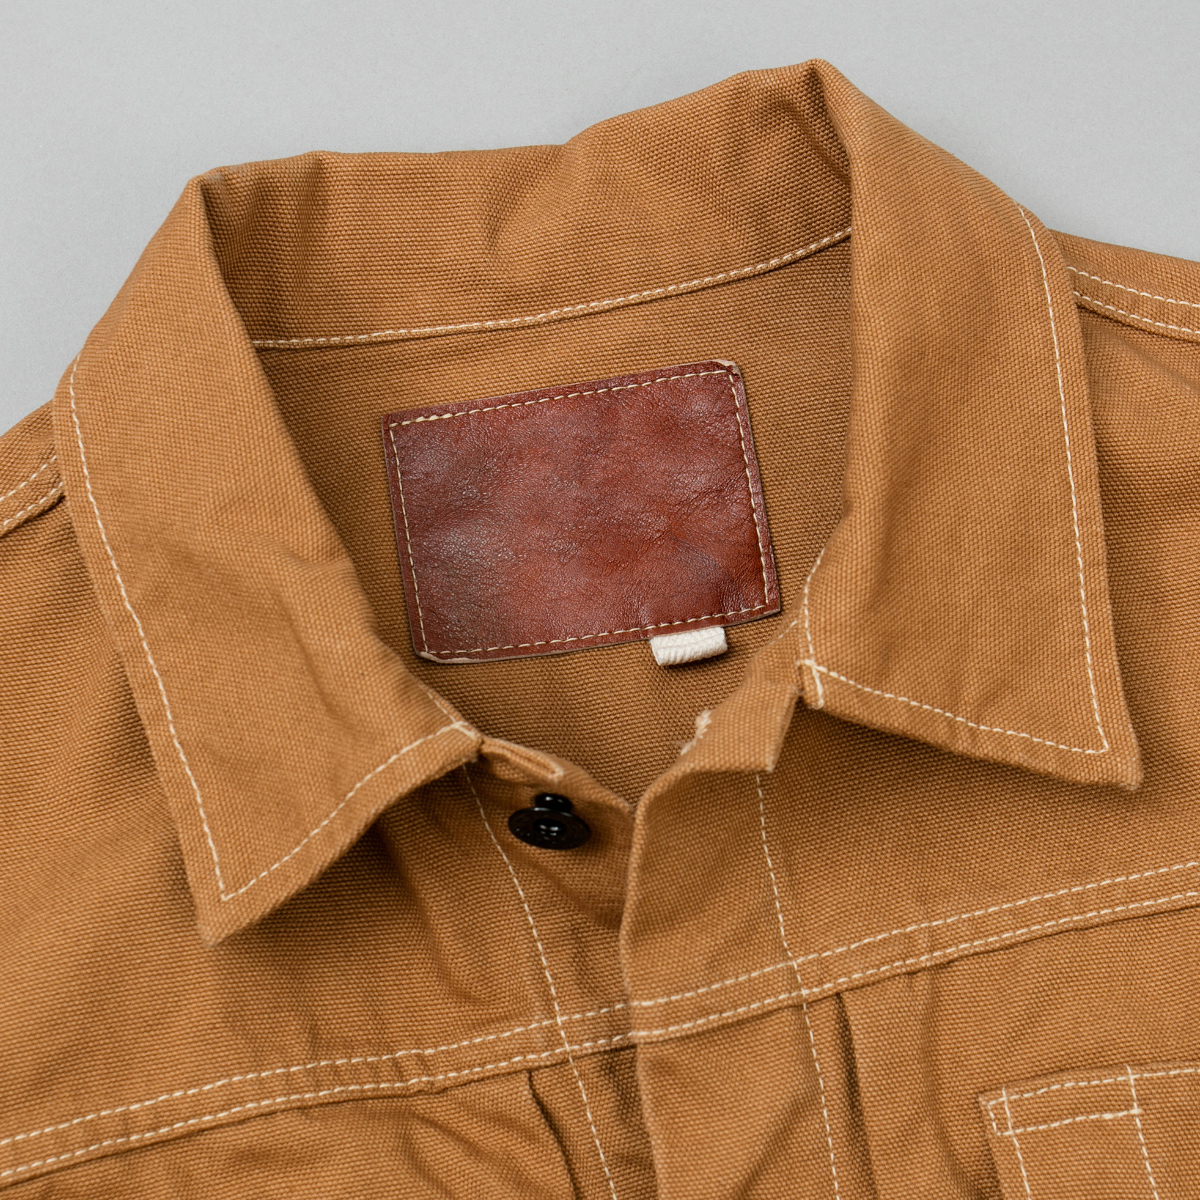 The Hill-Side Japanamerica Type II Jacket